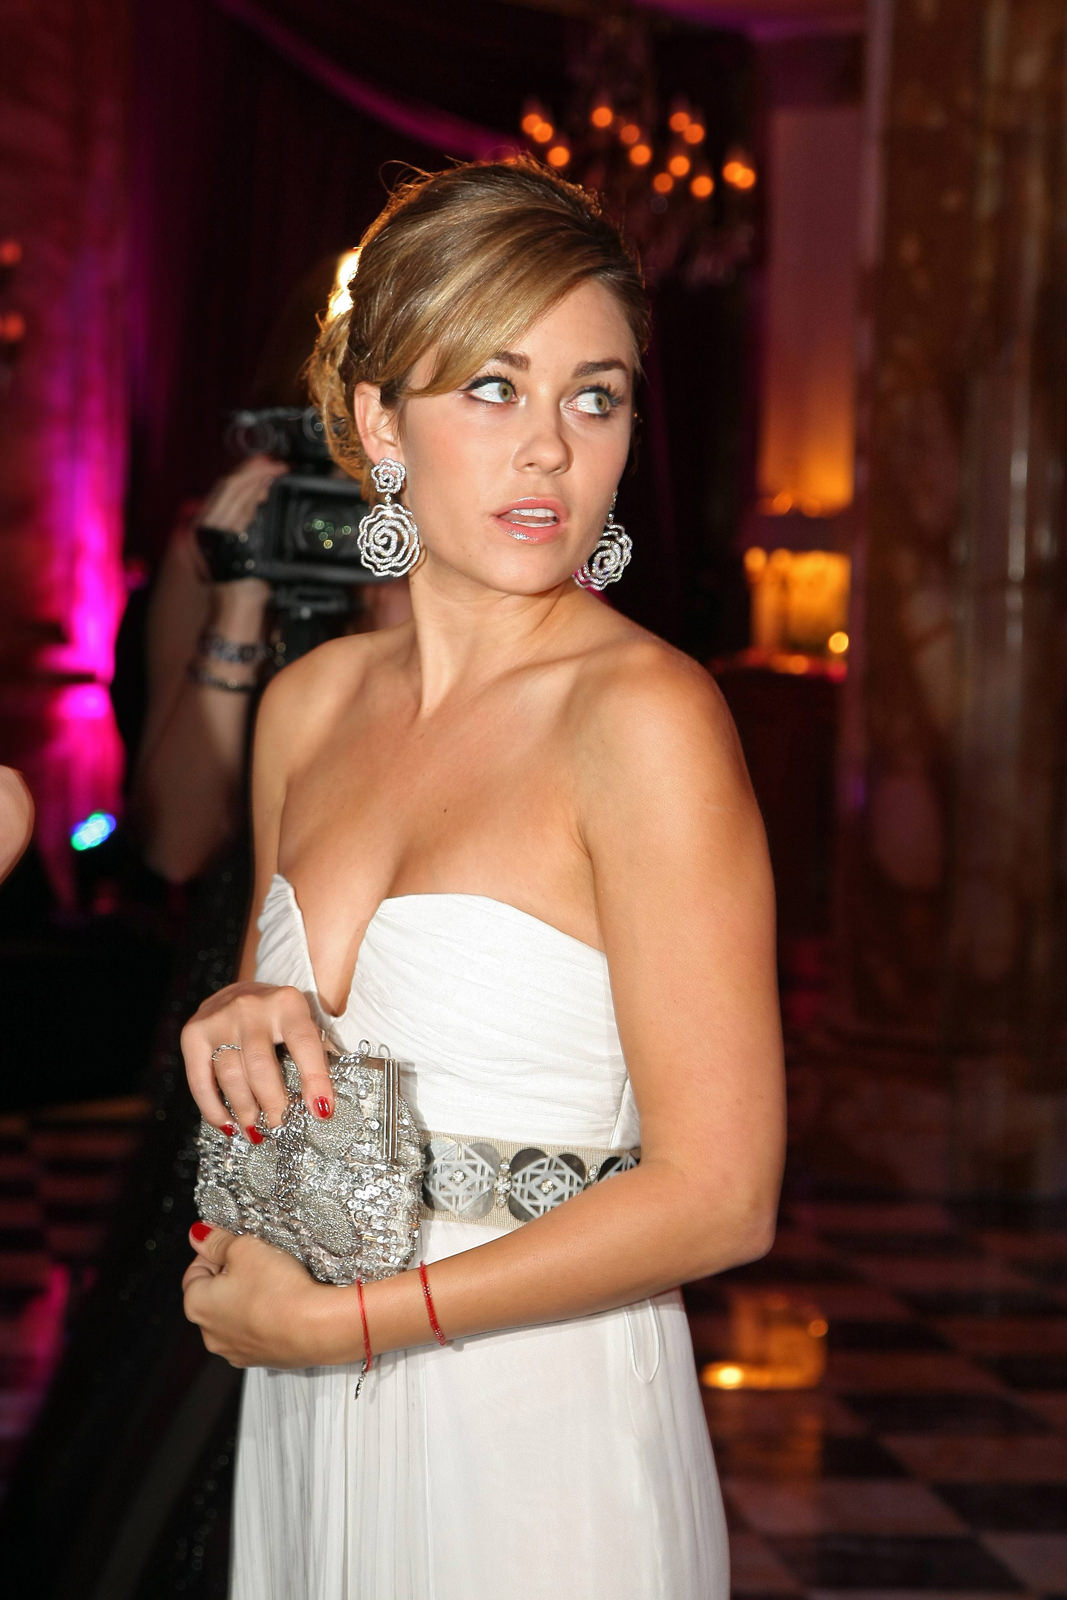 Lauren Conrad Photo Gallery